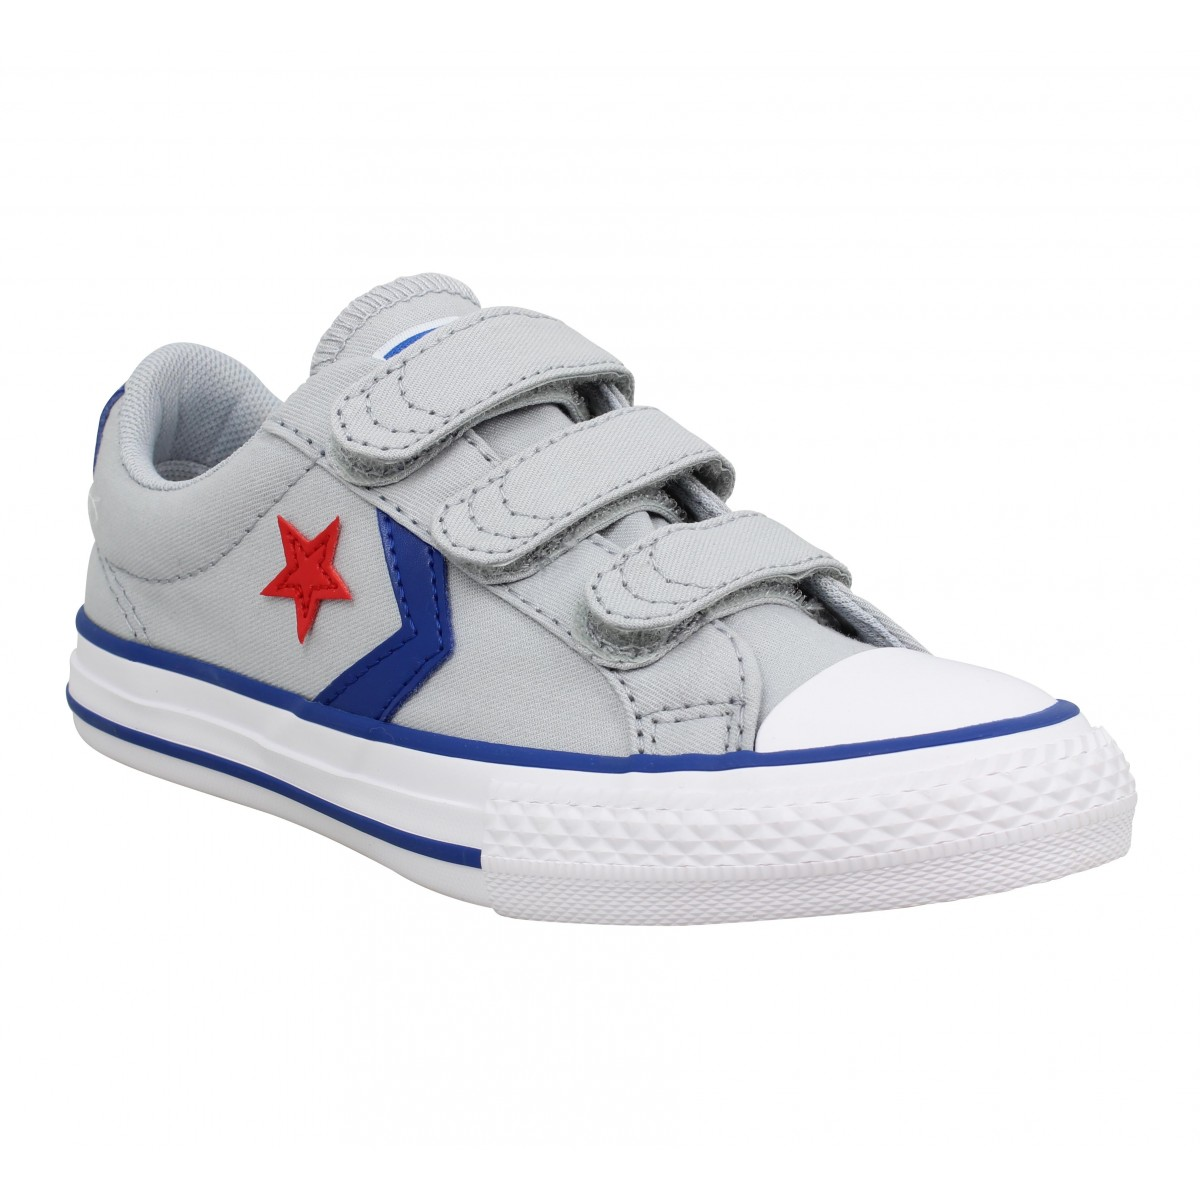 Baskets CONVERSE Star Player 3V OX toile Enfant Grey